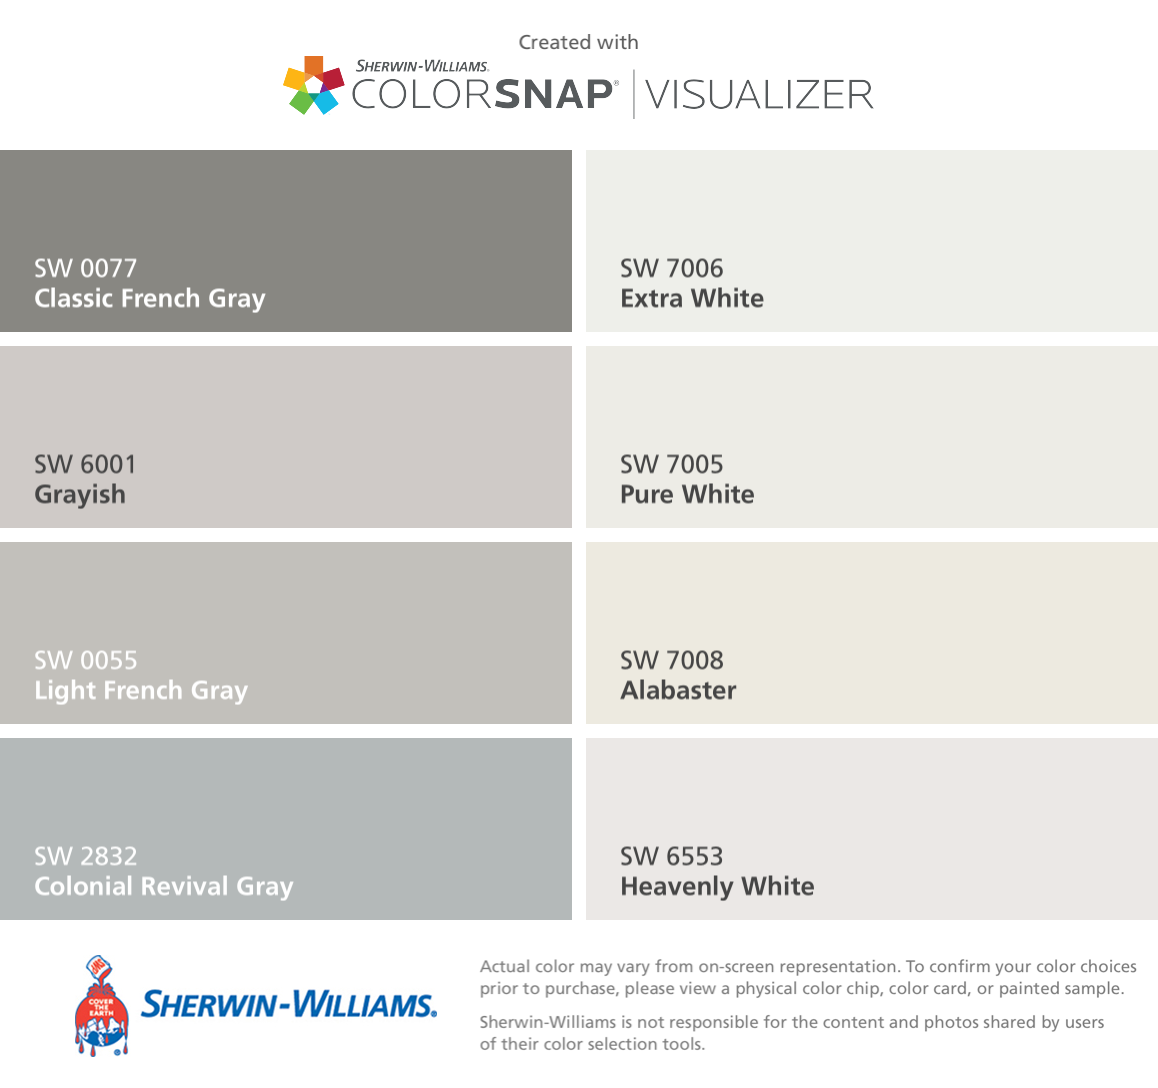 I Found These Colors With Colorsnap Visualizer For Iphone By Sherwin Williams Clic French Gray Sw 0077 Grayish 6001 Light